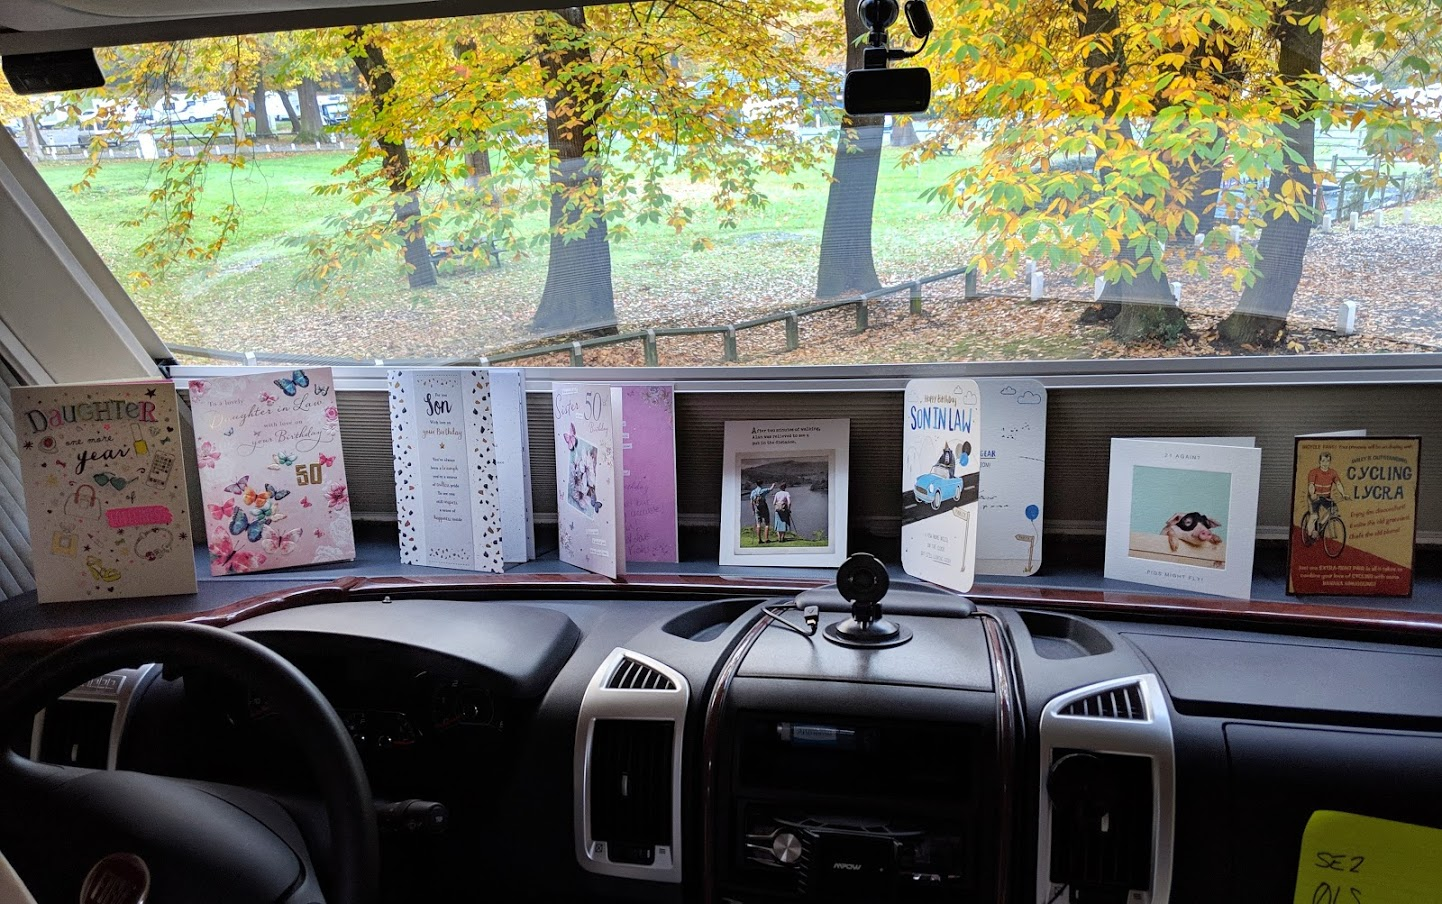 Not much room for birthday cards in a motorhome